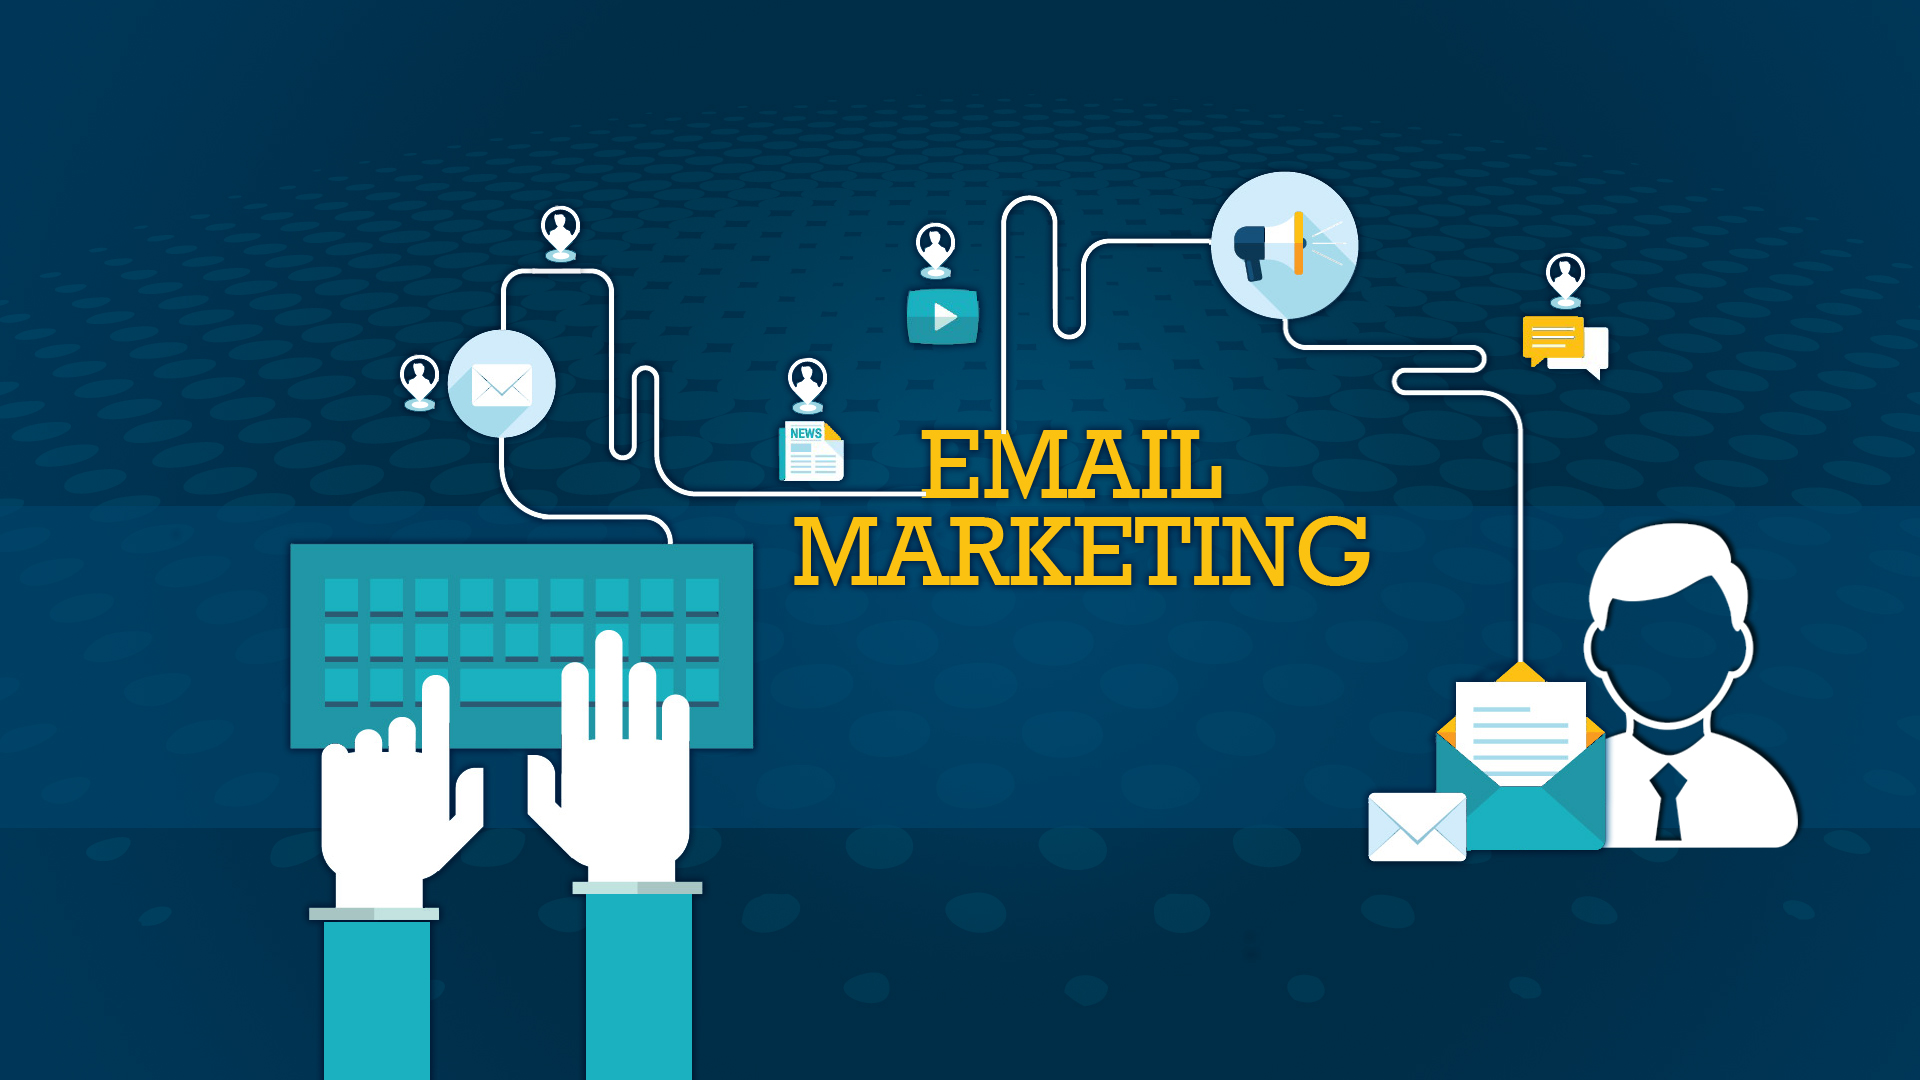 Top Level Email Marketing Management Services